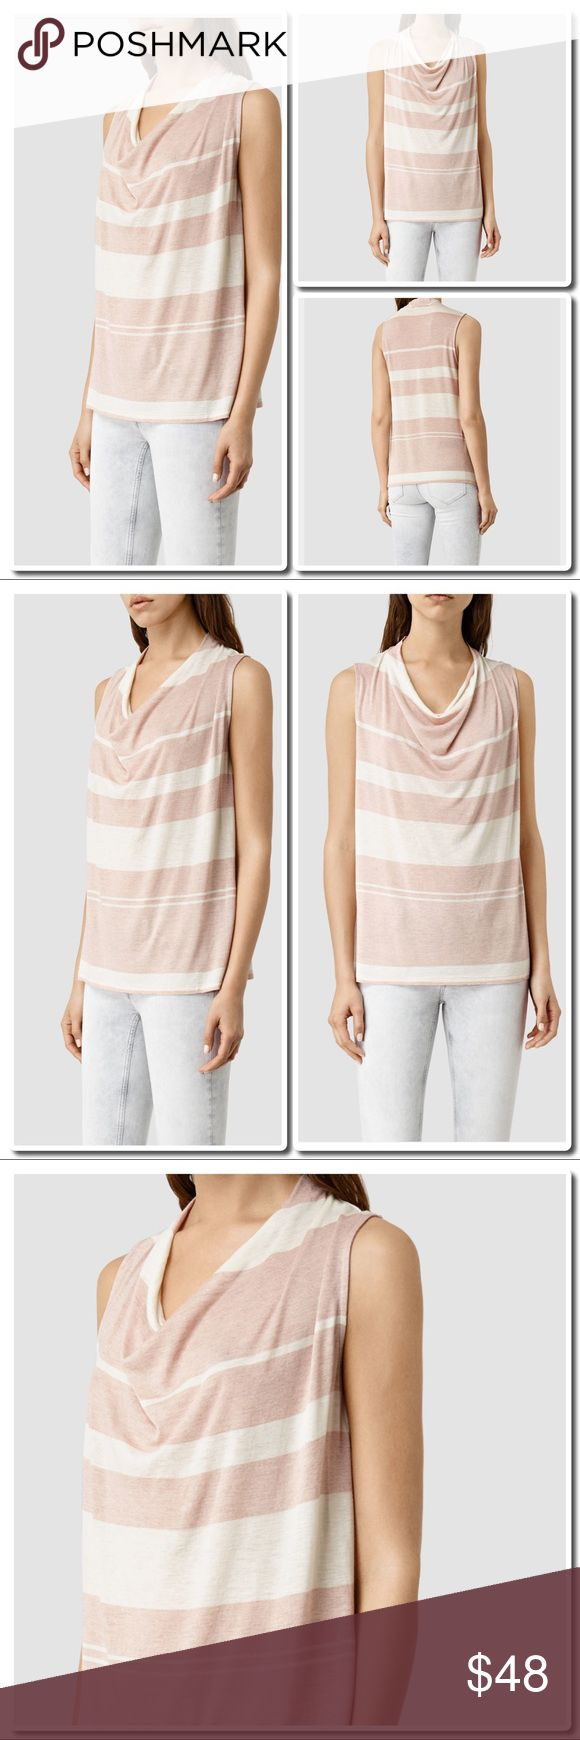 ALL SAINTS Amei Stripe Top Cami Pink/ white A loose fitting jersey Top with seasonal Stripe finish. Slouchy neckline. Sleeveless. Stripe a Print. Oversized Fit . Cropped . Worn with mast bleached jeans. 70% Viscose 30% wool - Handwash inside out. All Saints Tops Tees - Short Sleeve